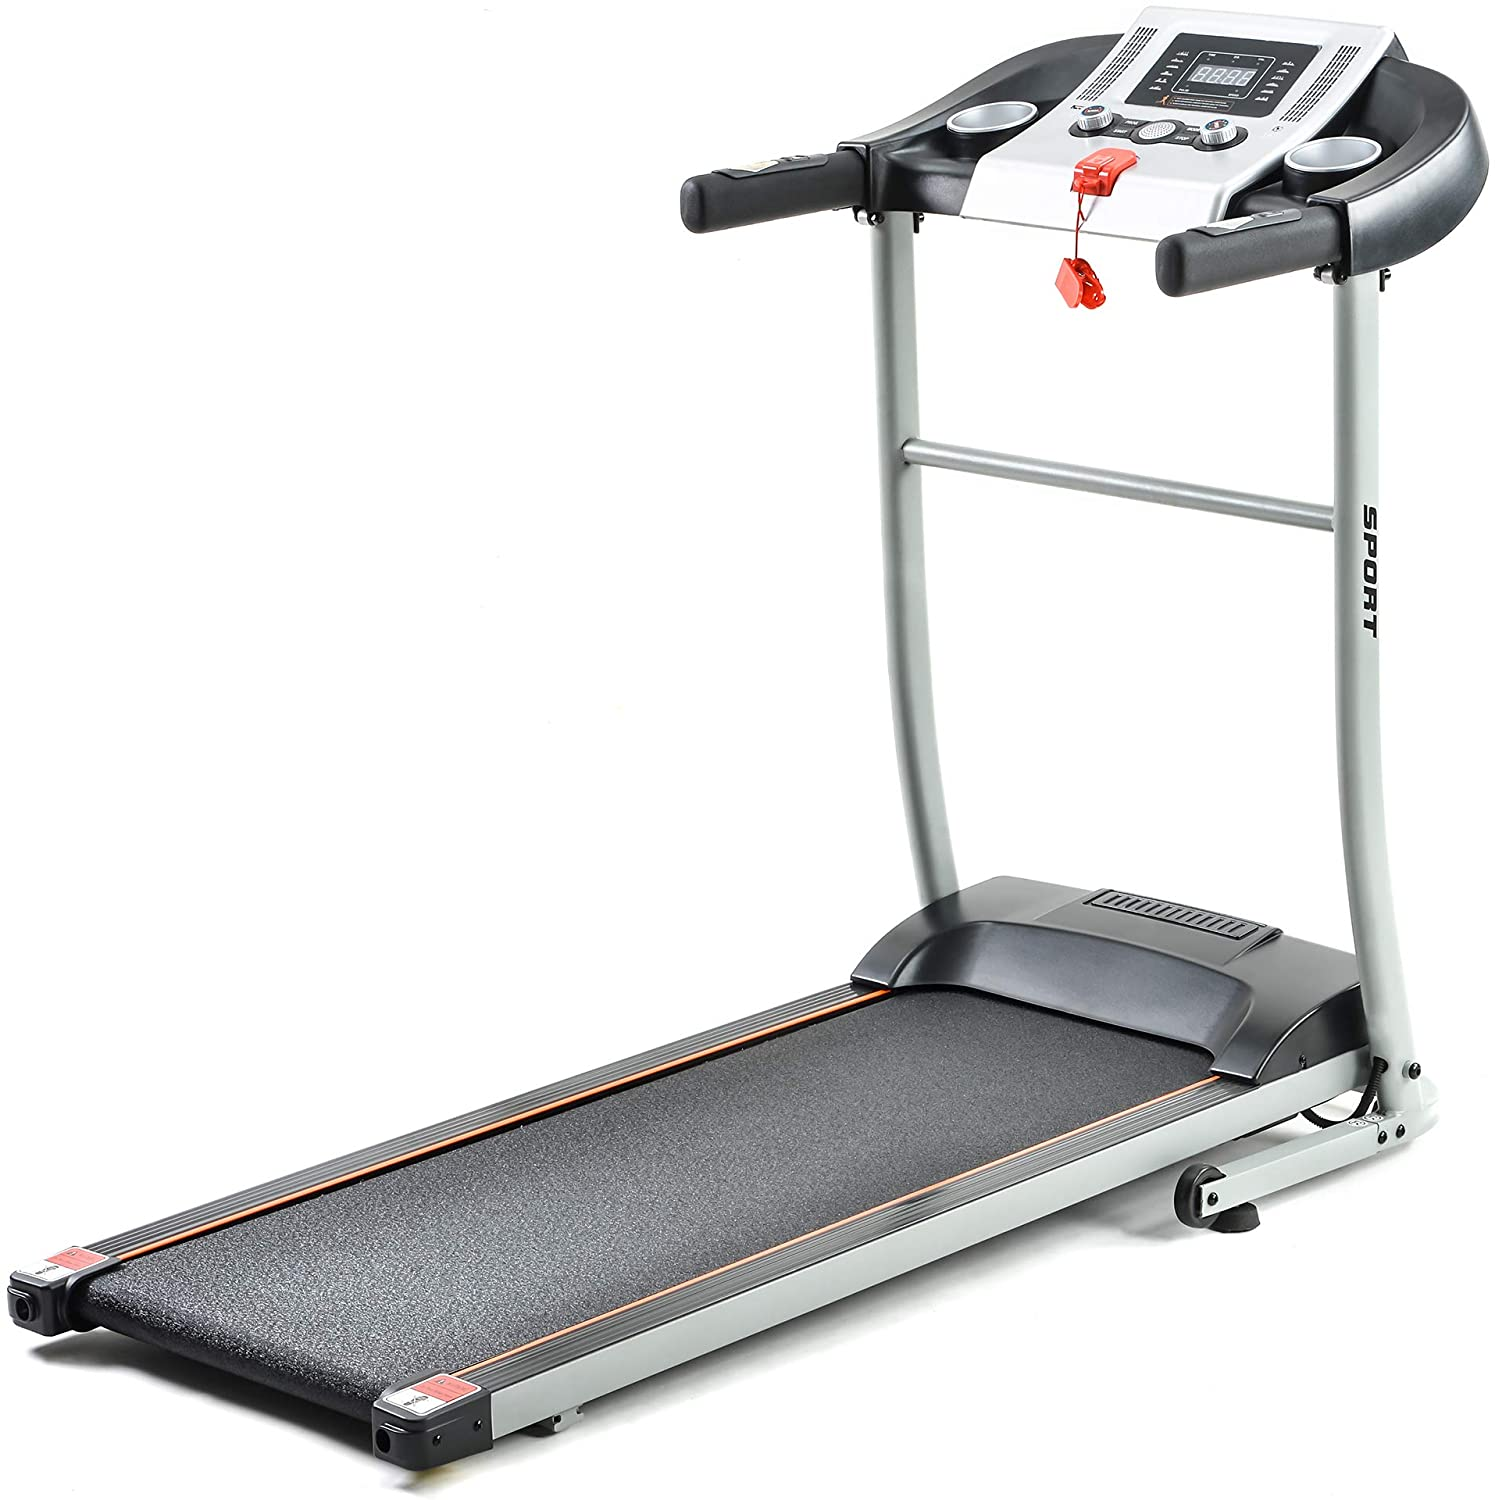 HoozGee Home Treadmill Folding Incline Treadmills for Running and Walking Exercise with LED Display of Tracking Heart Rate Calories